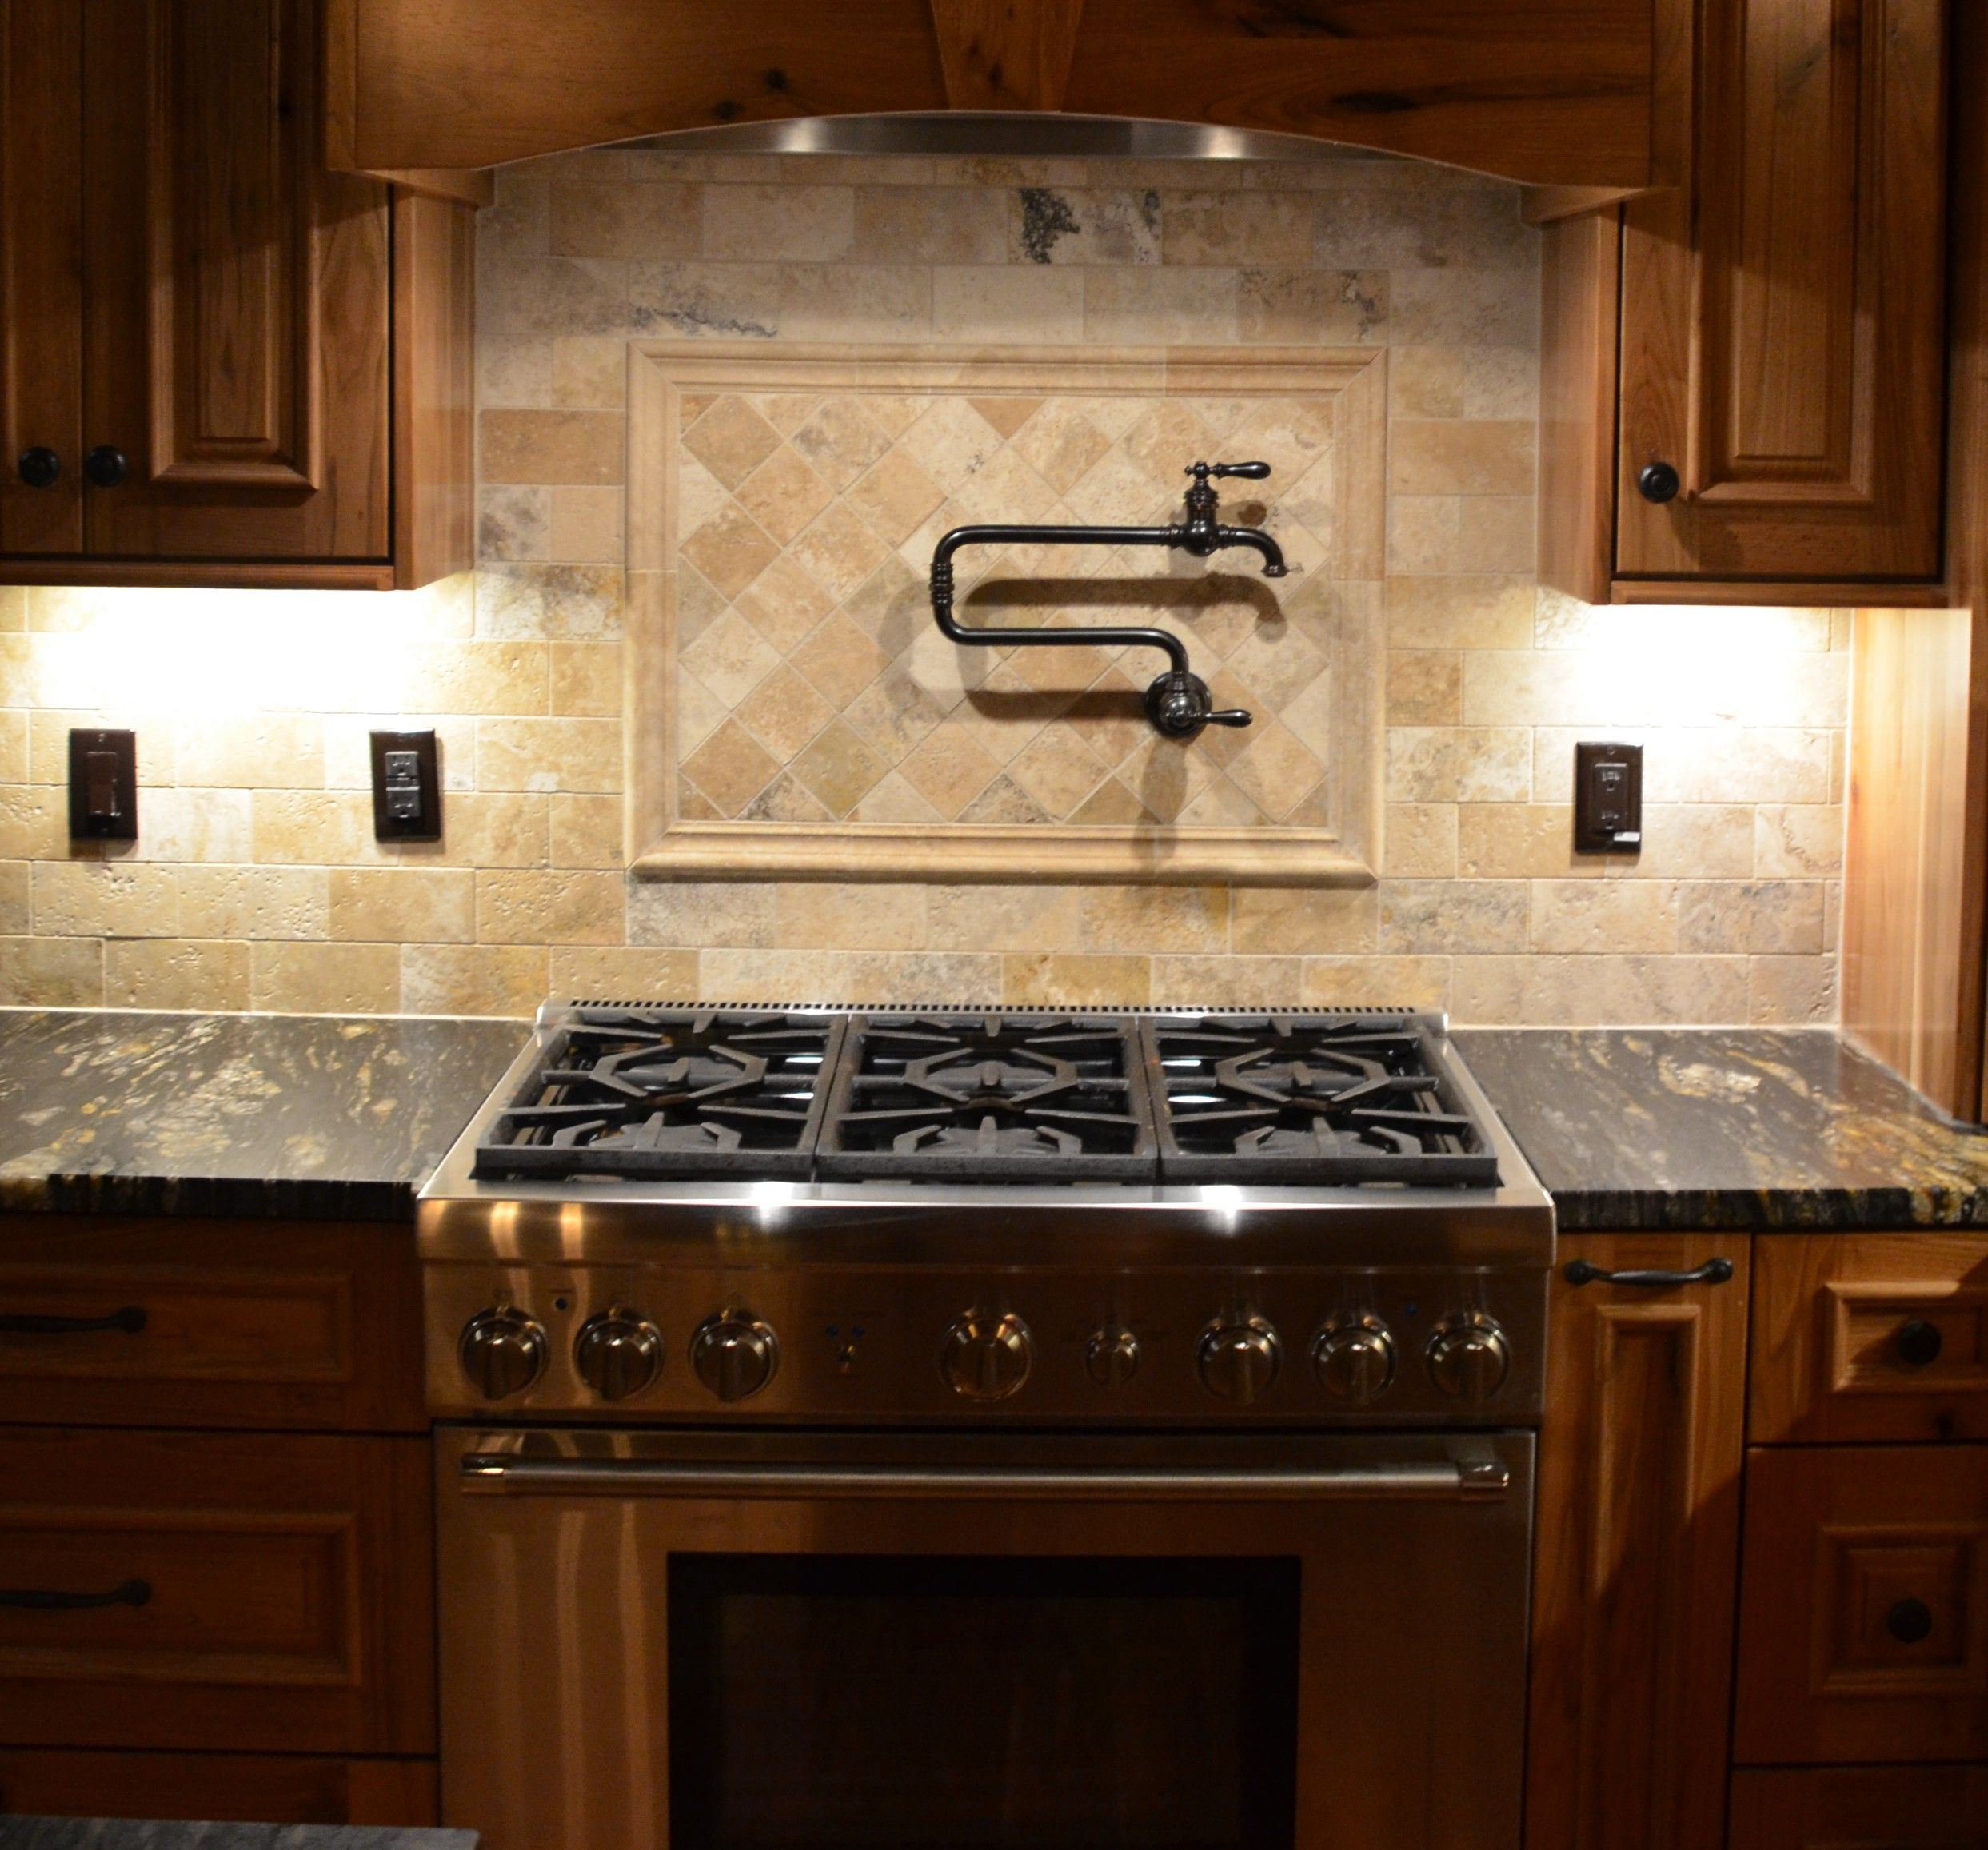 Rustic Butternut Kitchen With Travertine Tile Backsplash And Pot Filler Travertine Tile Backsplash Travertine Tile Kitchen